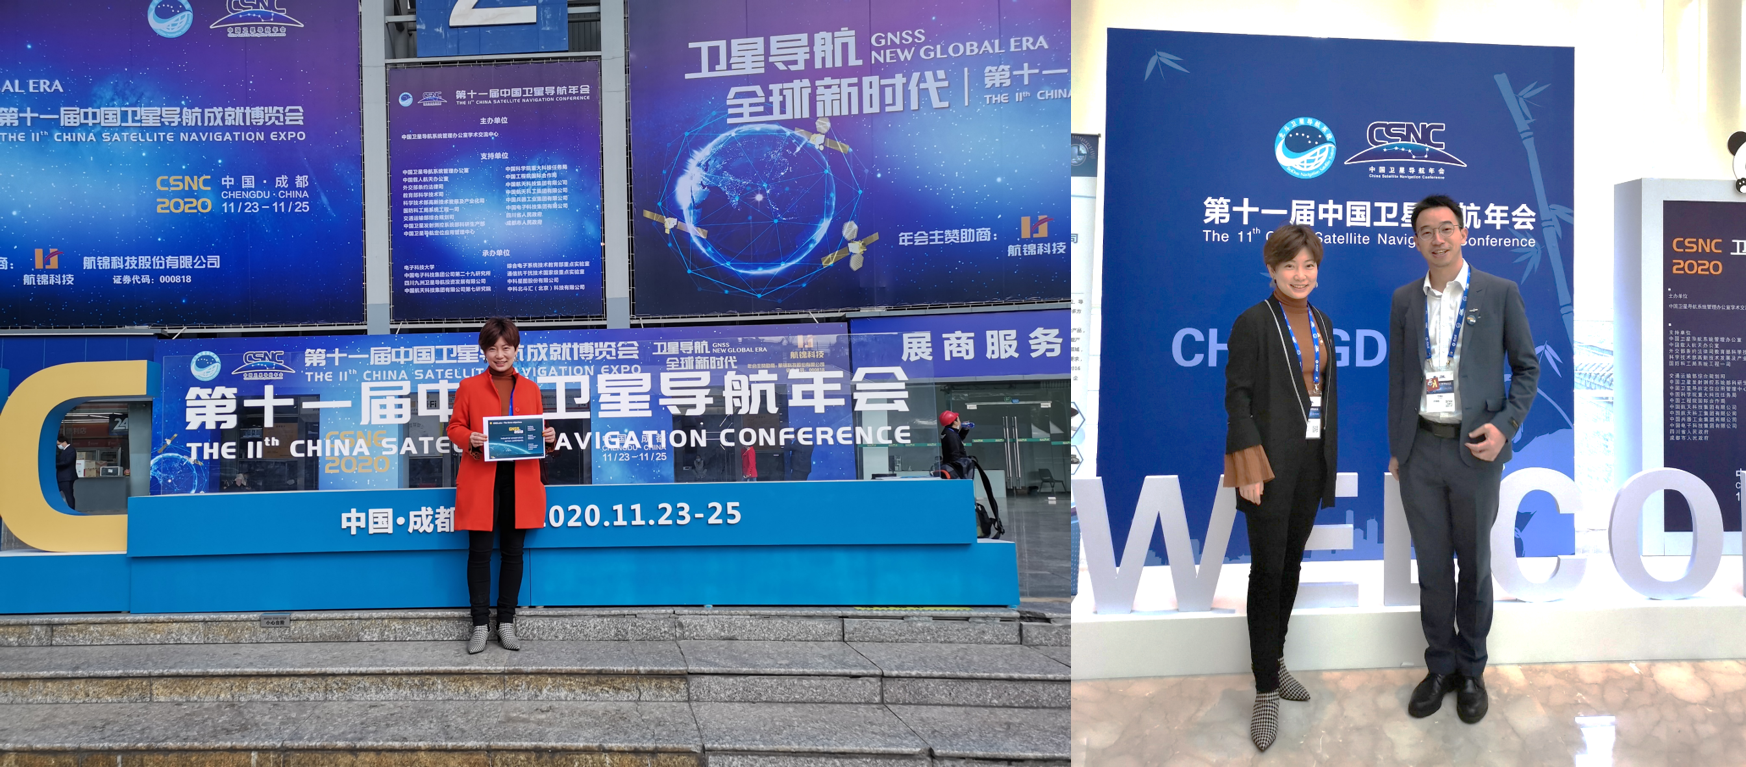 12th China Satellite Navigation Conference on Spatial-Temporal Data